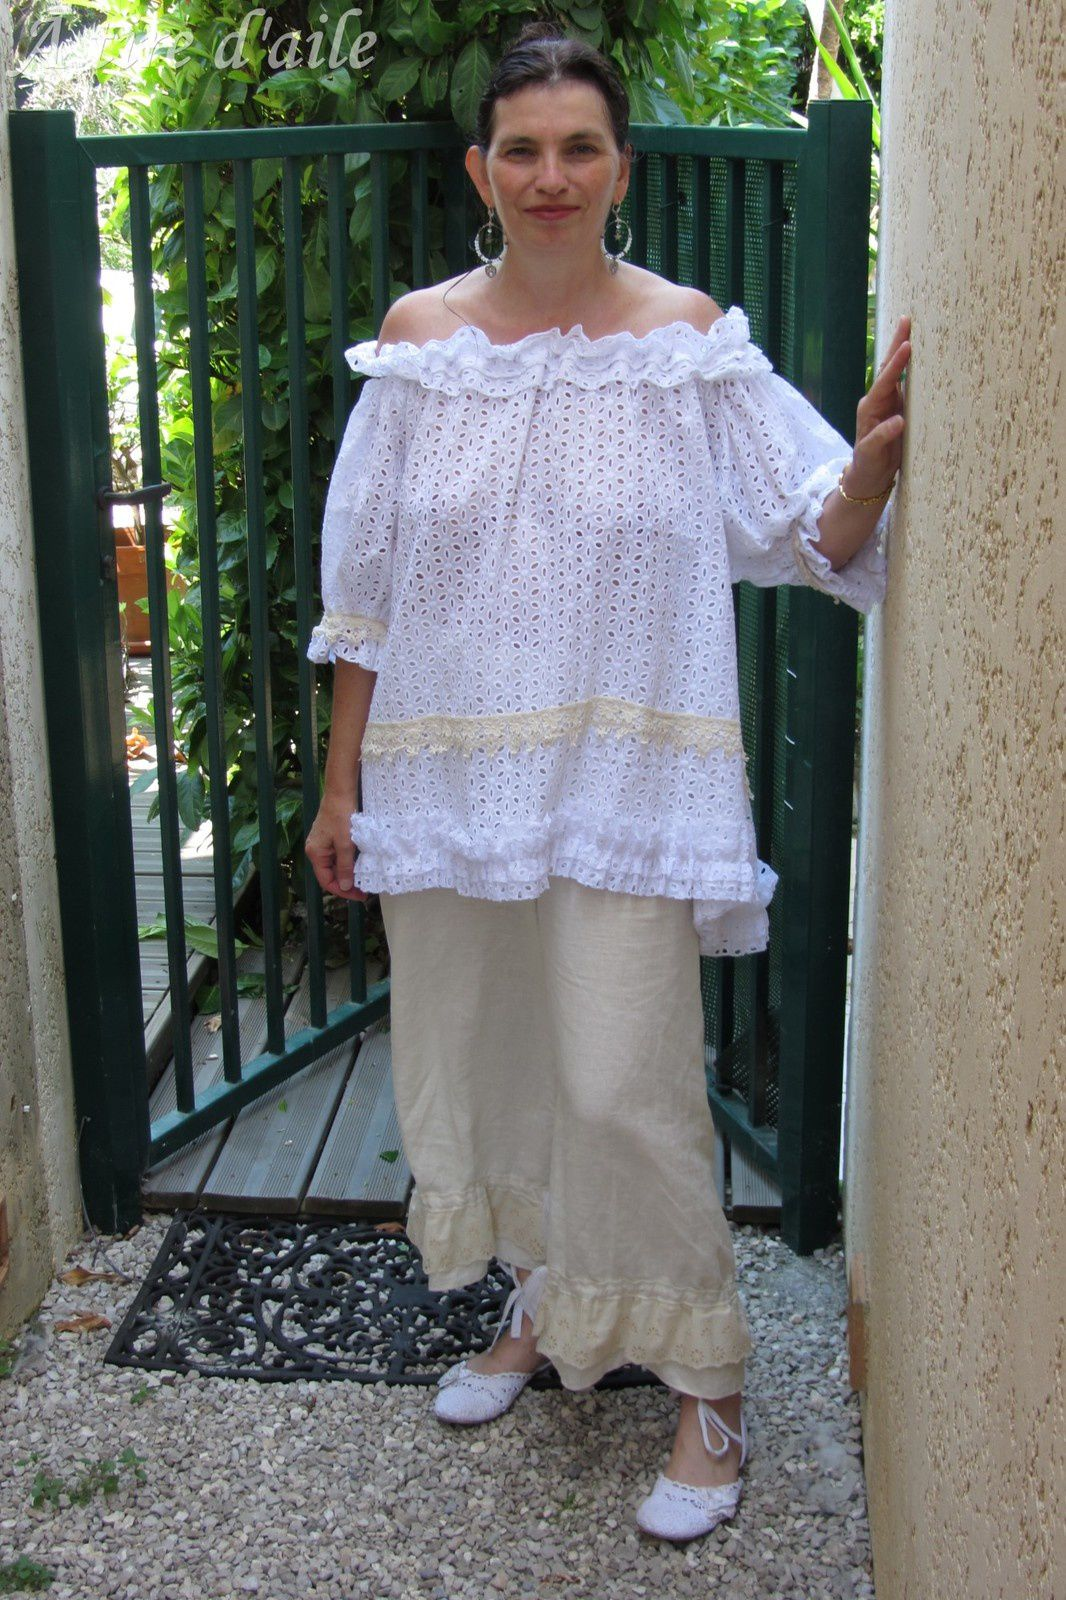 Ma belle chemise blanche